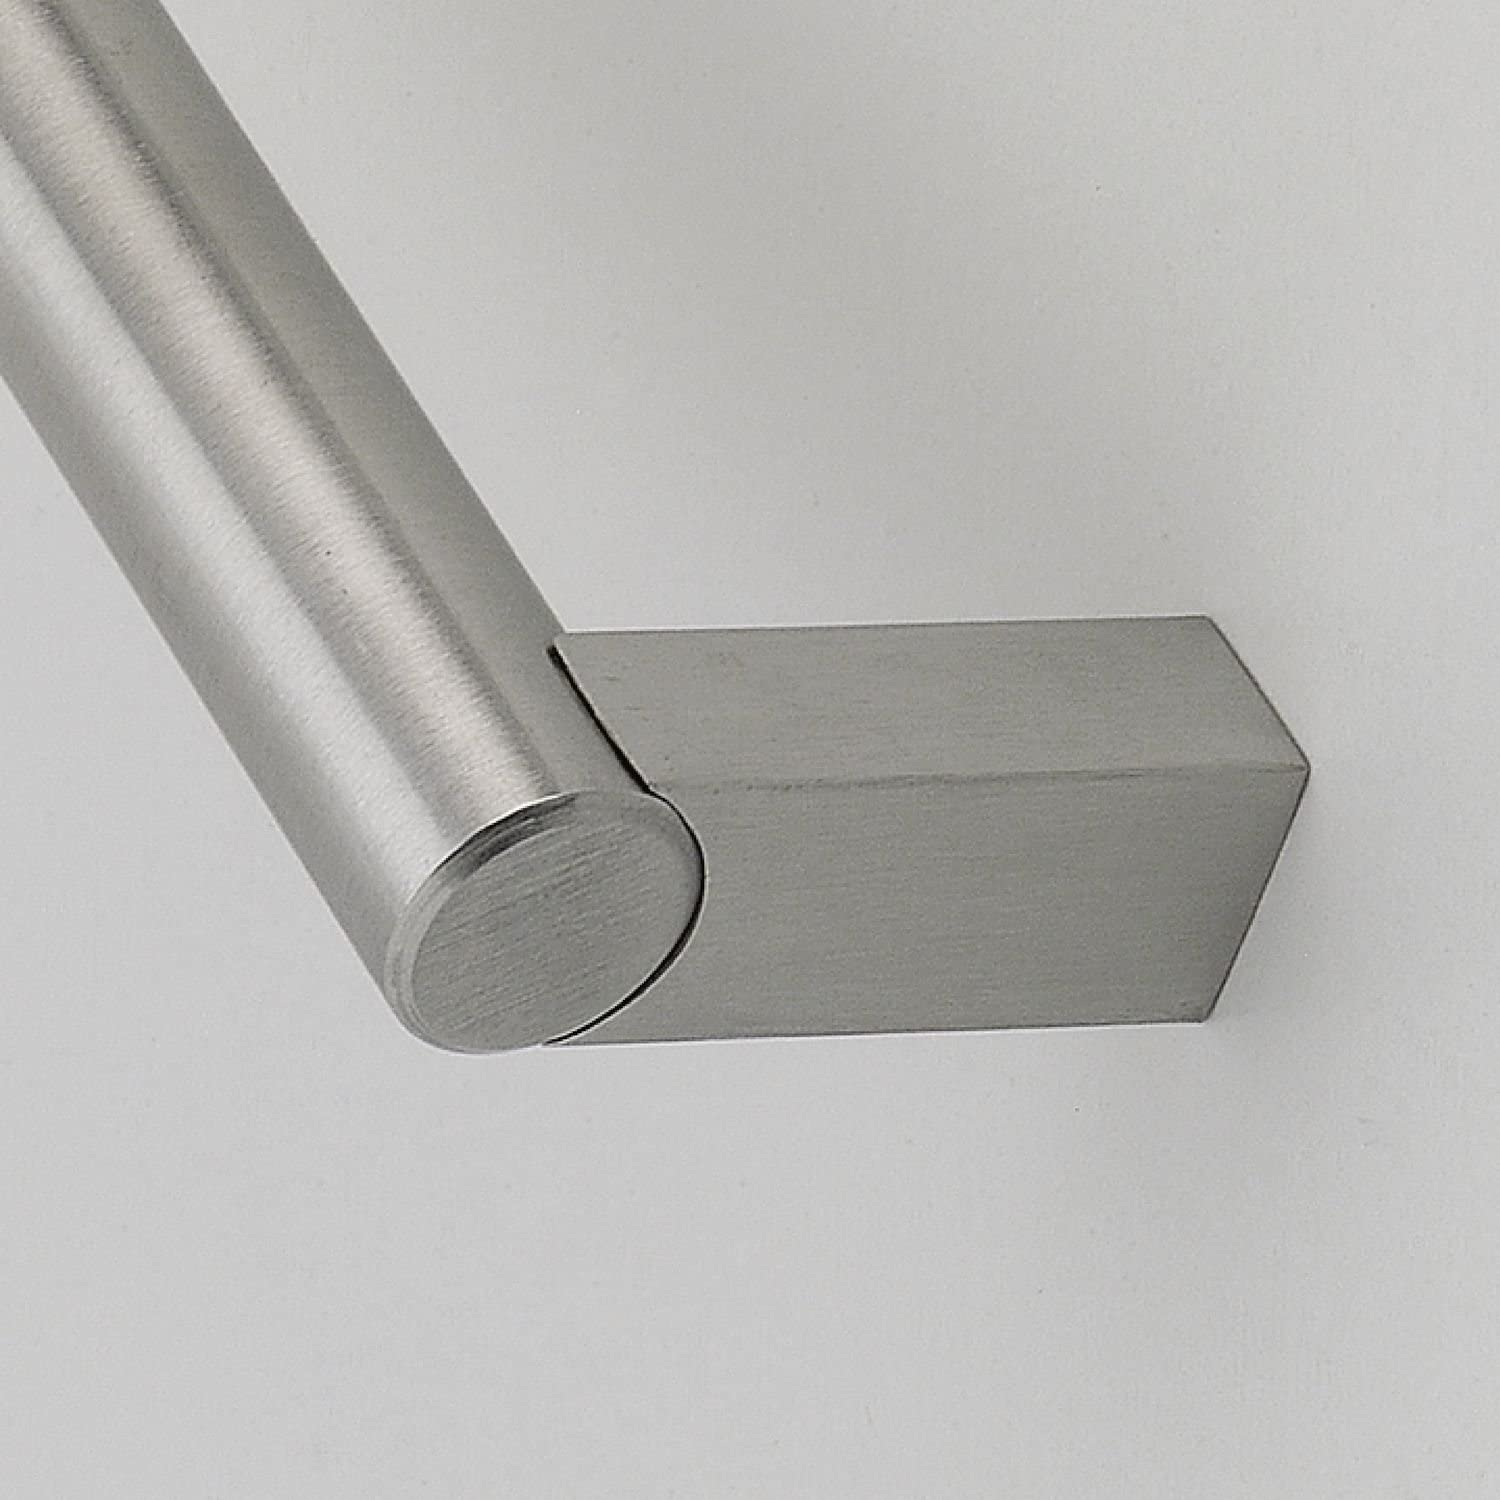 Siro Matar Diameter 14/mm Hole Distance 192/mm Width 204/mm 1472/204/N1 Stainless Steel Brushed